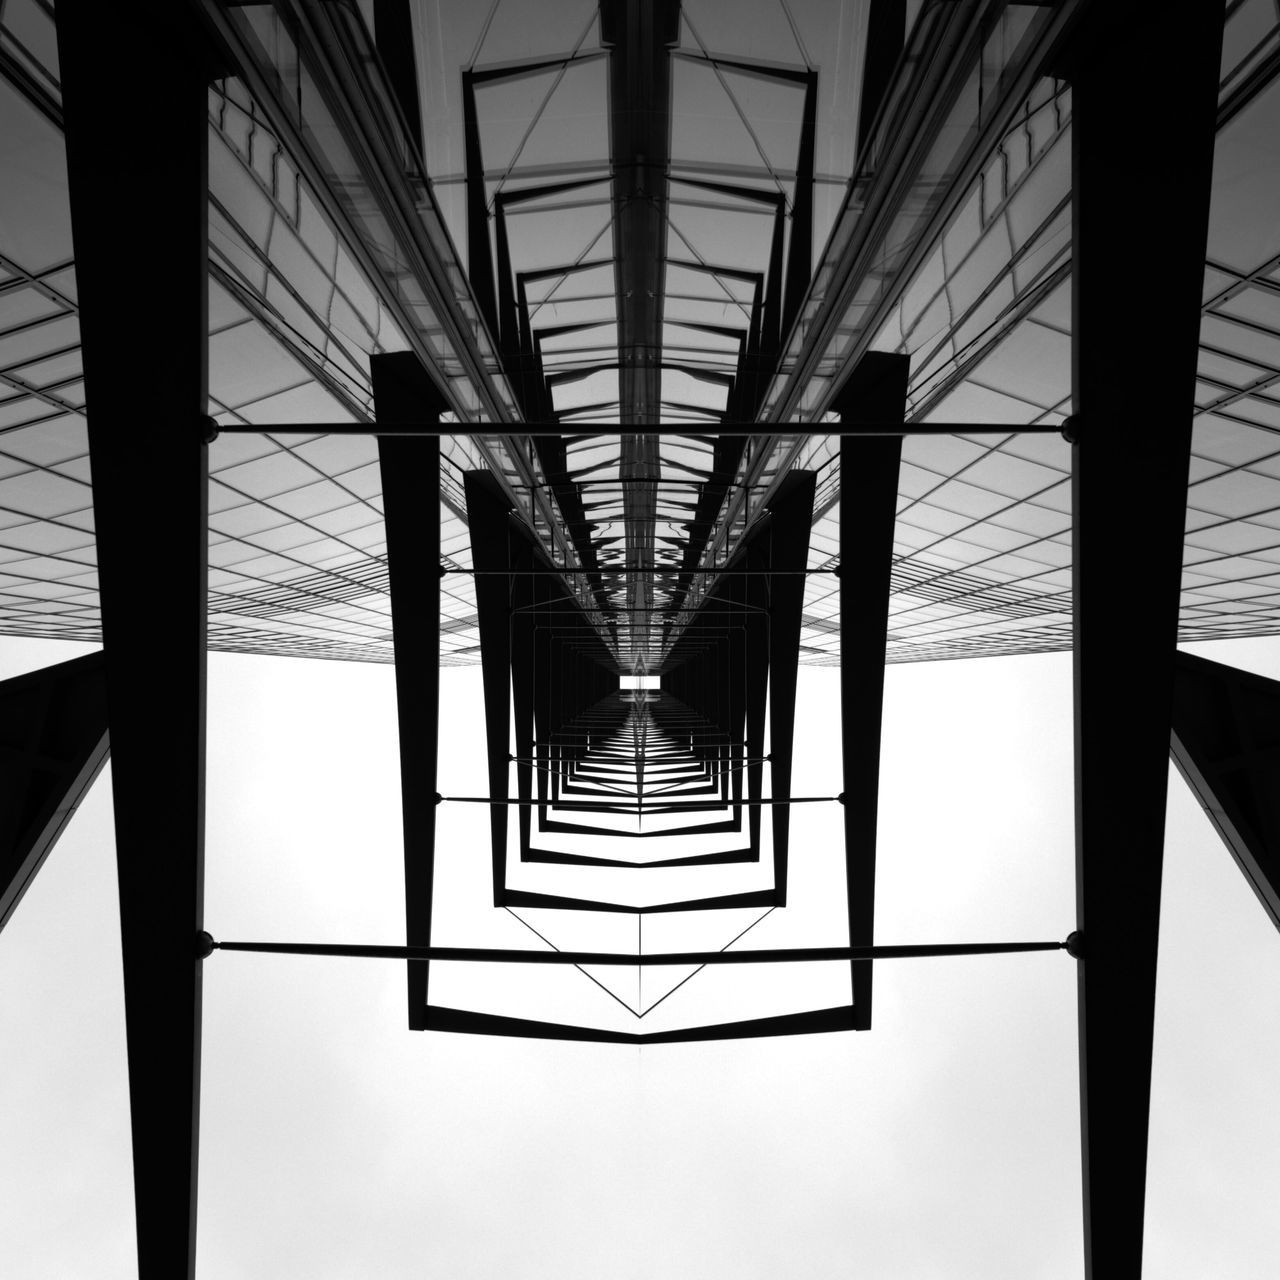 Bonn Posttower Symmetry Architecture Blackandwhite Fineart Architecturelovers